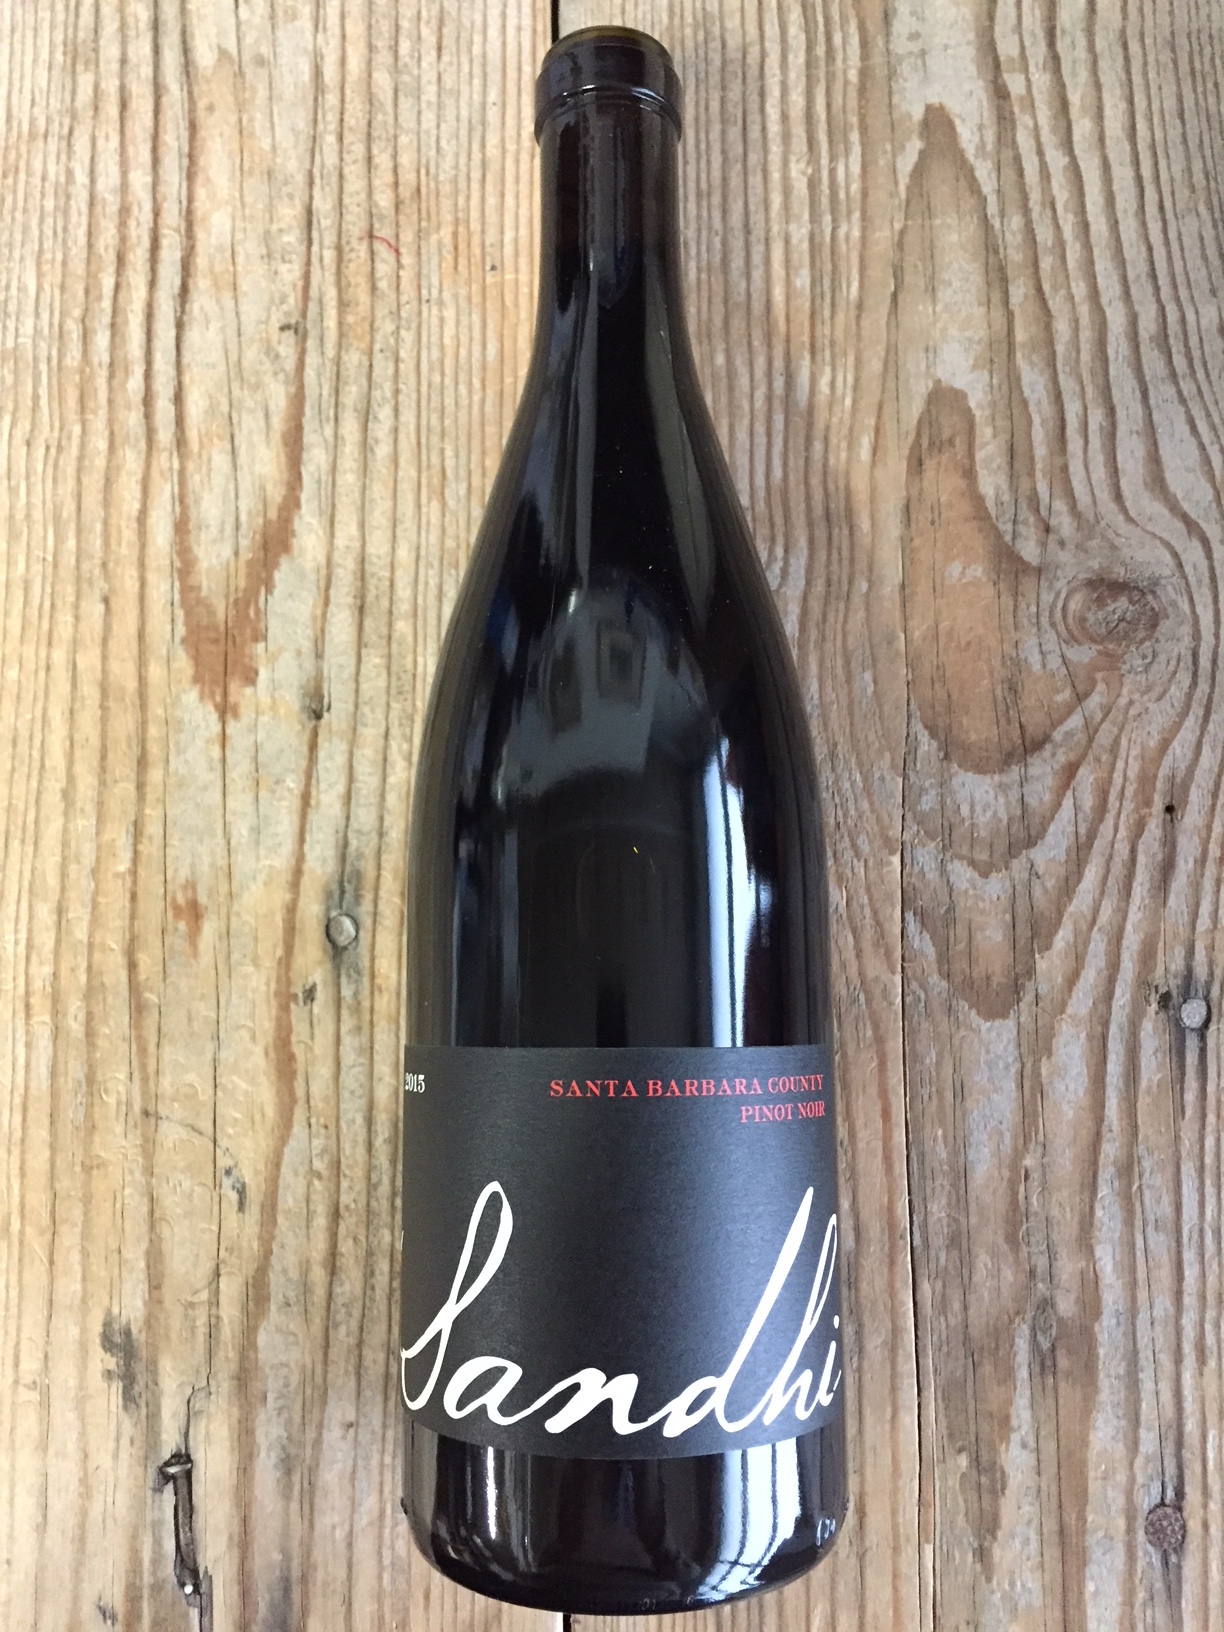 Sandhi Pinot Noir Santa Barbara County 2015  - Les Marchands Wine Bar & Merchant